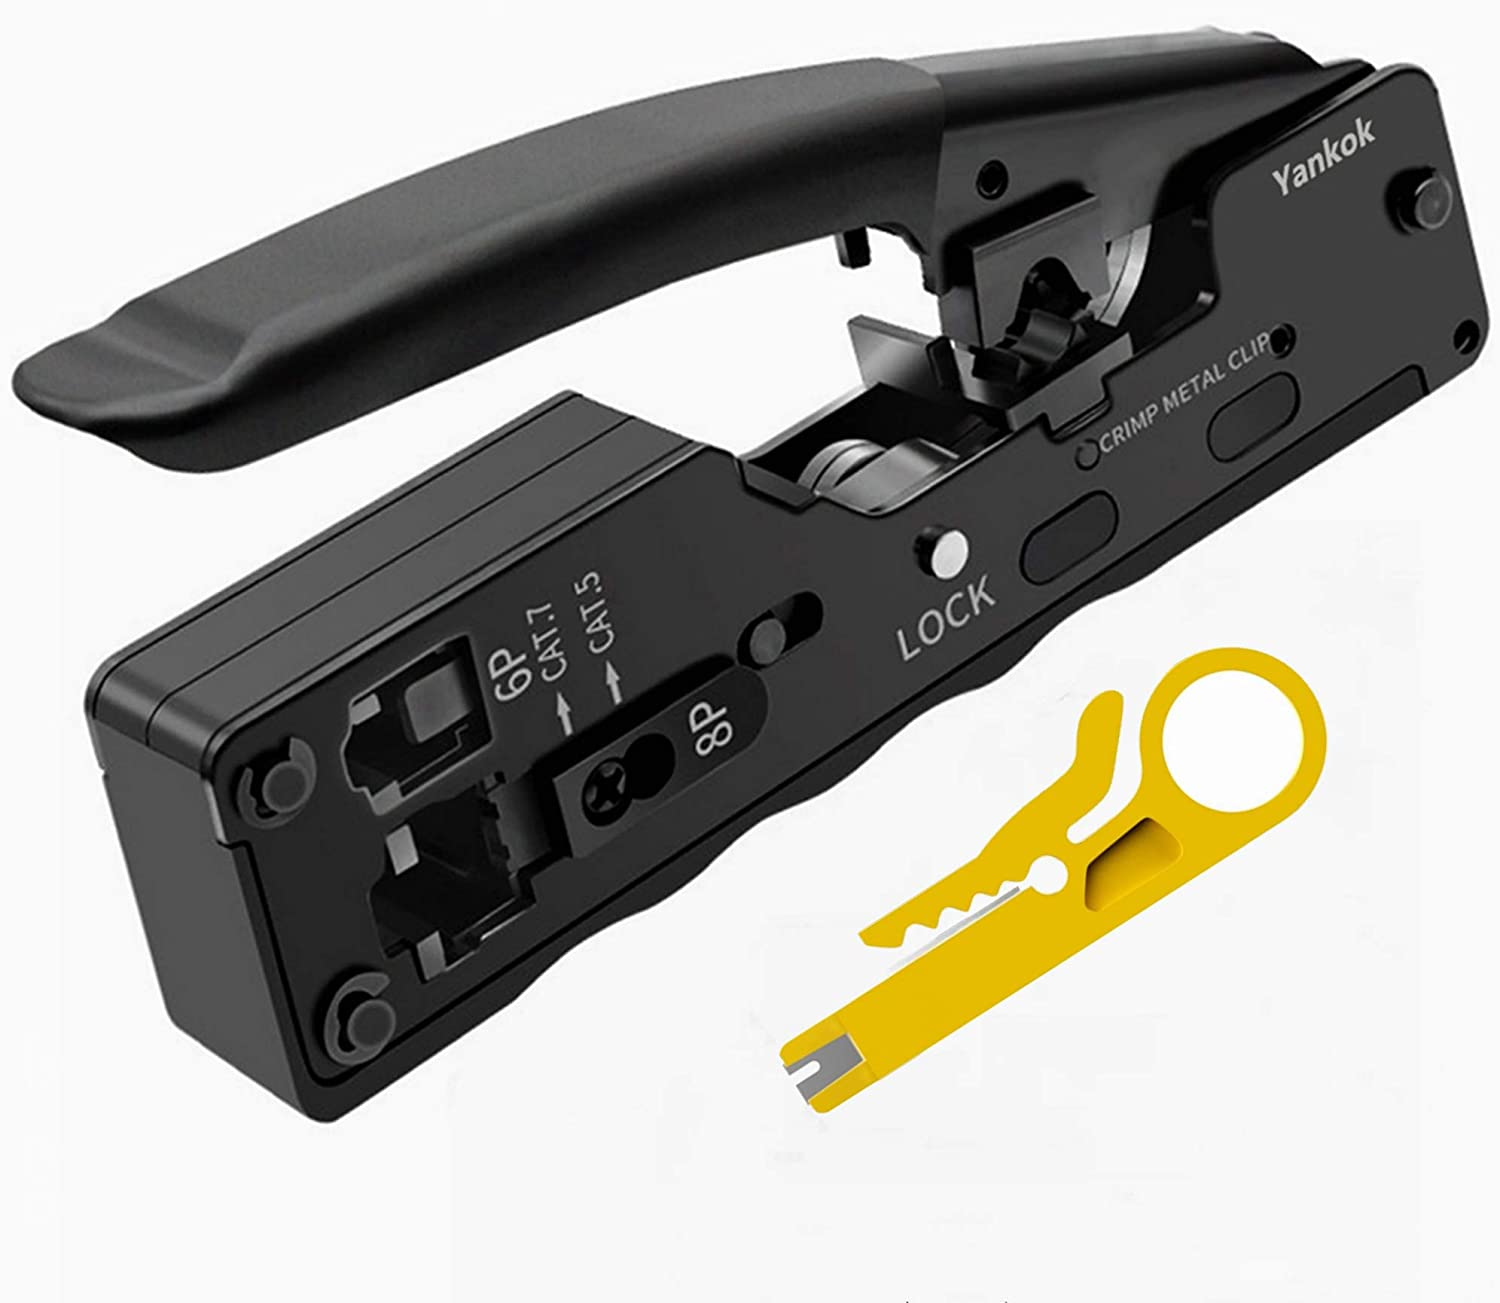 Yankok Cat5 Cat6 Cat7 Pass Through Crimper For Ez Rj45 And Standard Rj45 Rj12 Rj11 Connectors Cat6a Shielded Modular Plugs Black Grip Come With Carry Pouch And Mini Punch Down Tool Amazon Com Industrial